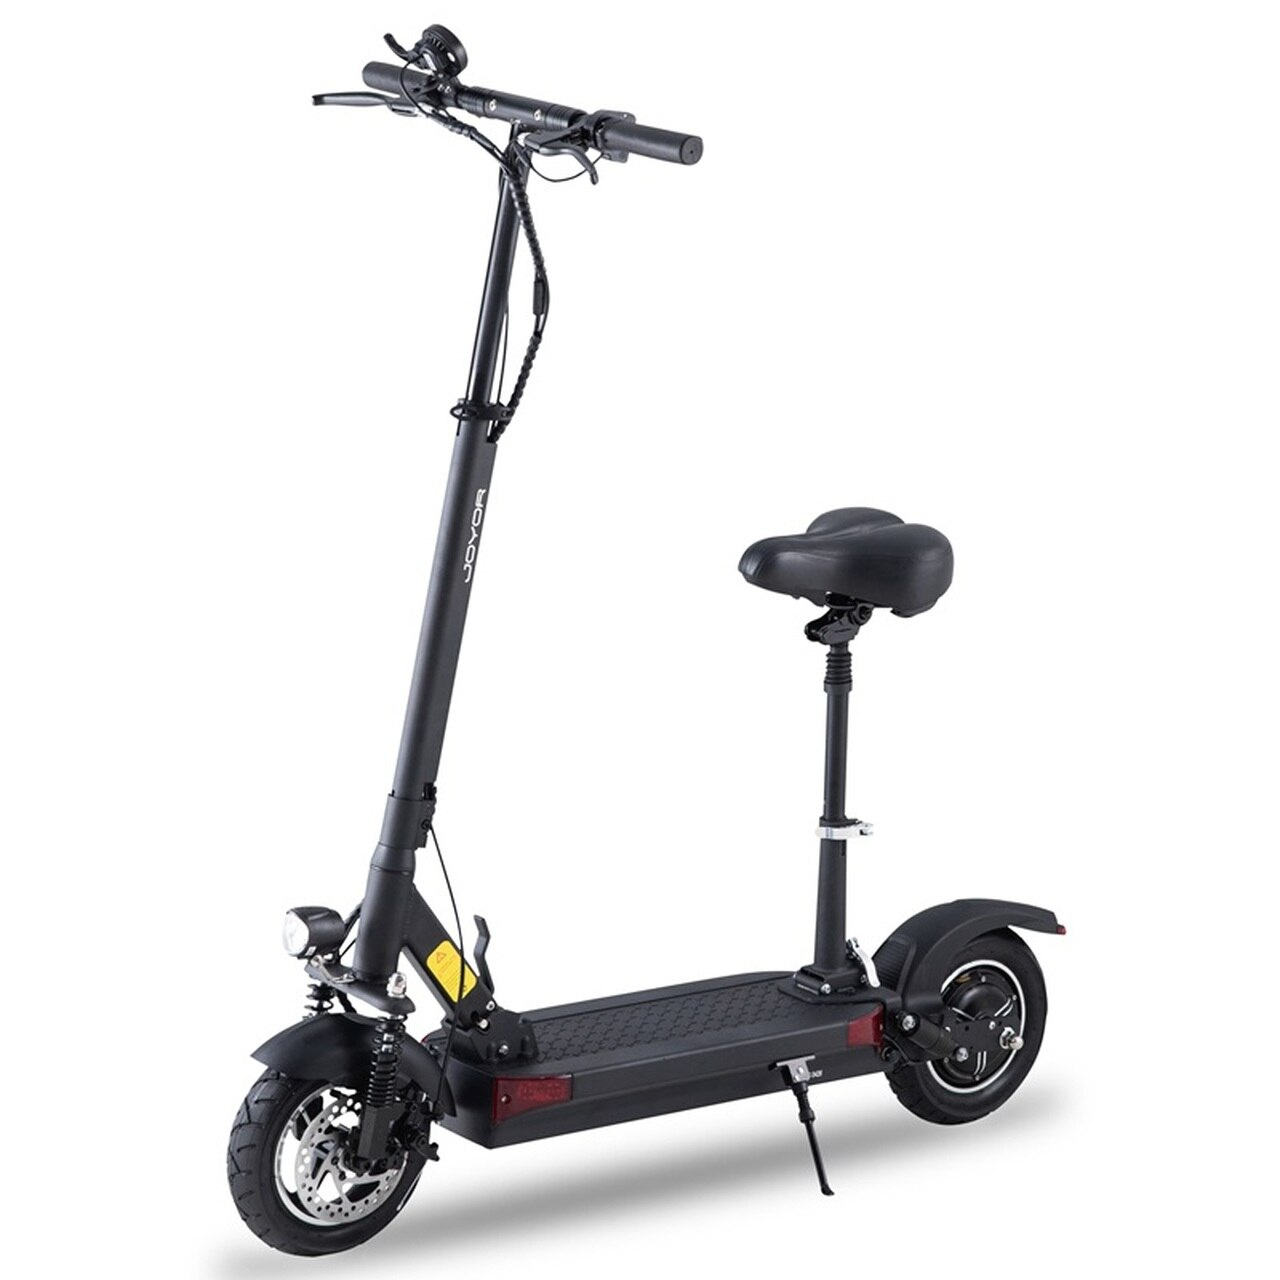 y9s-series-premium-electric-scooter-2-41646.1544007516.jpg